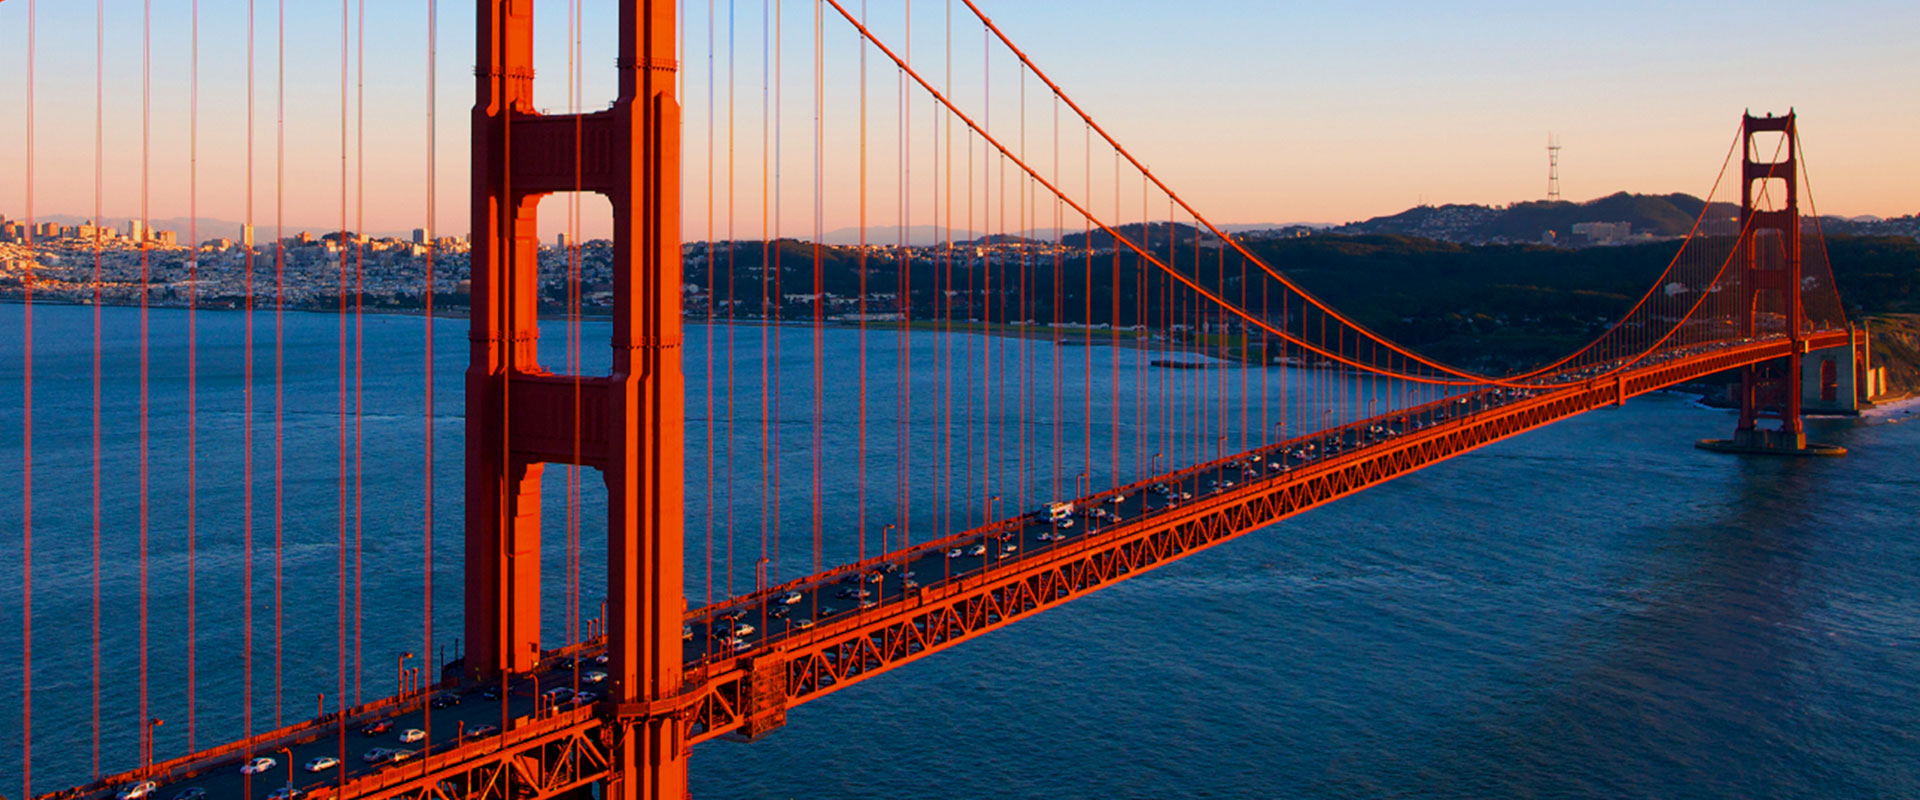 San-Francisco-Skyline-Golden-Gate-Bridge-Big-Bus-Tours-Jan-2016.jpg